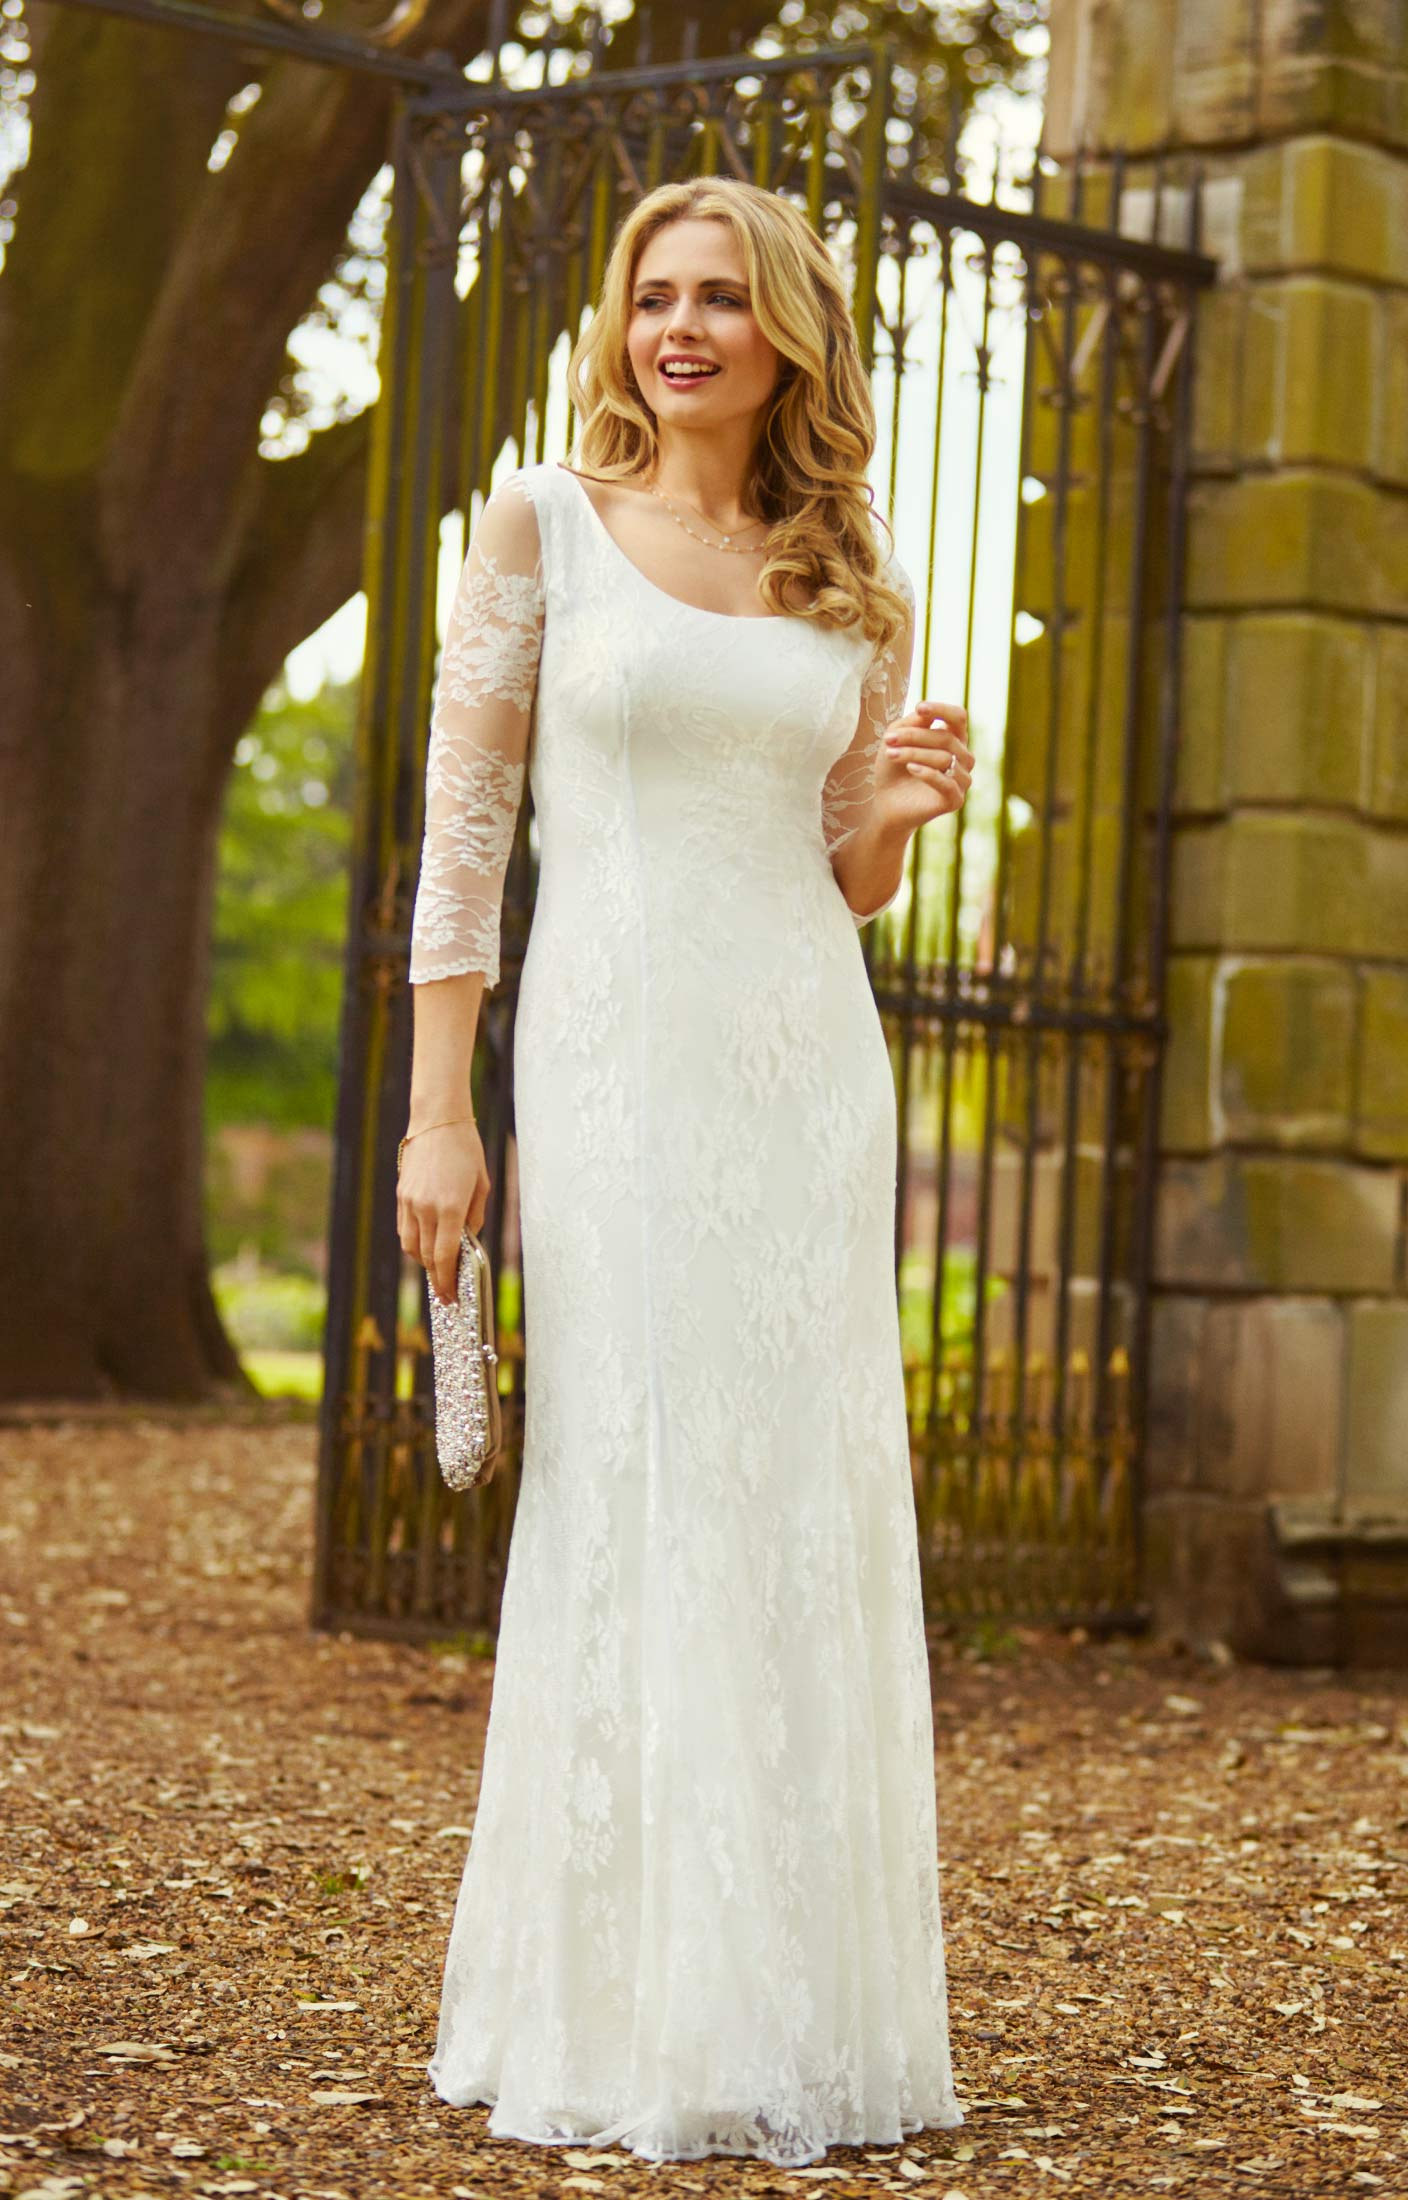 Maria Wedding Gown Ivory Evening Dresses Occasion Wear